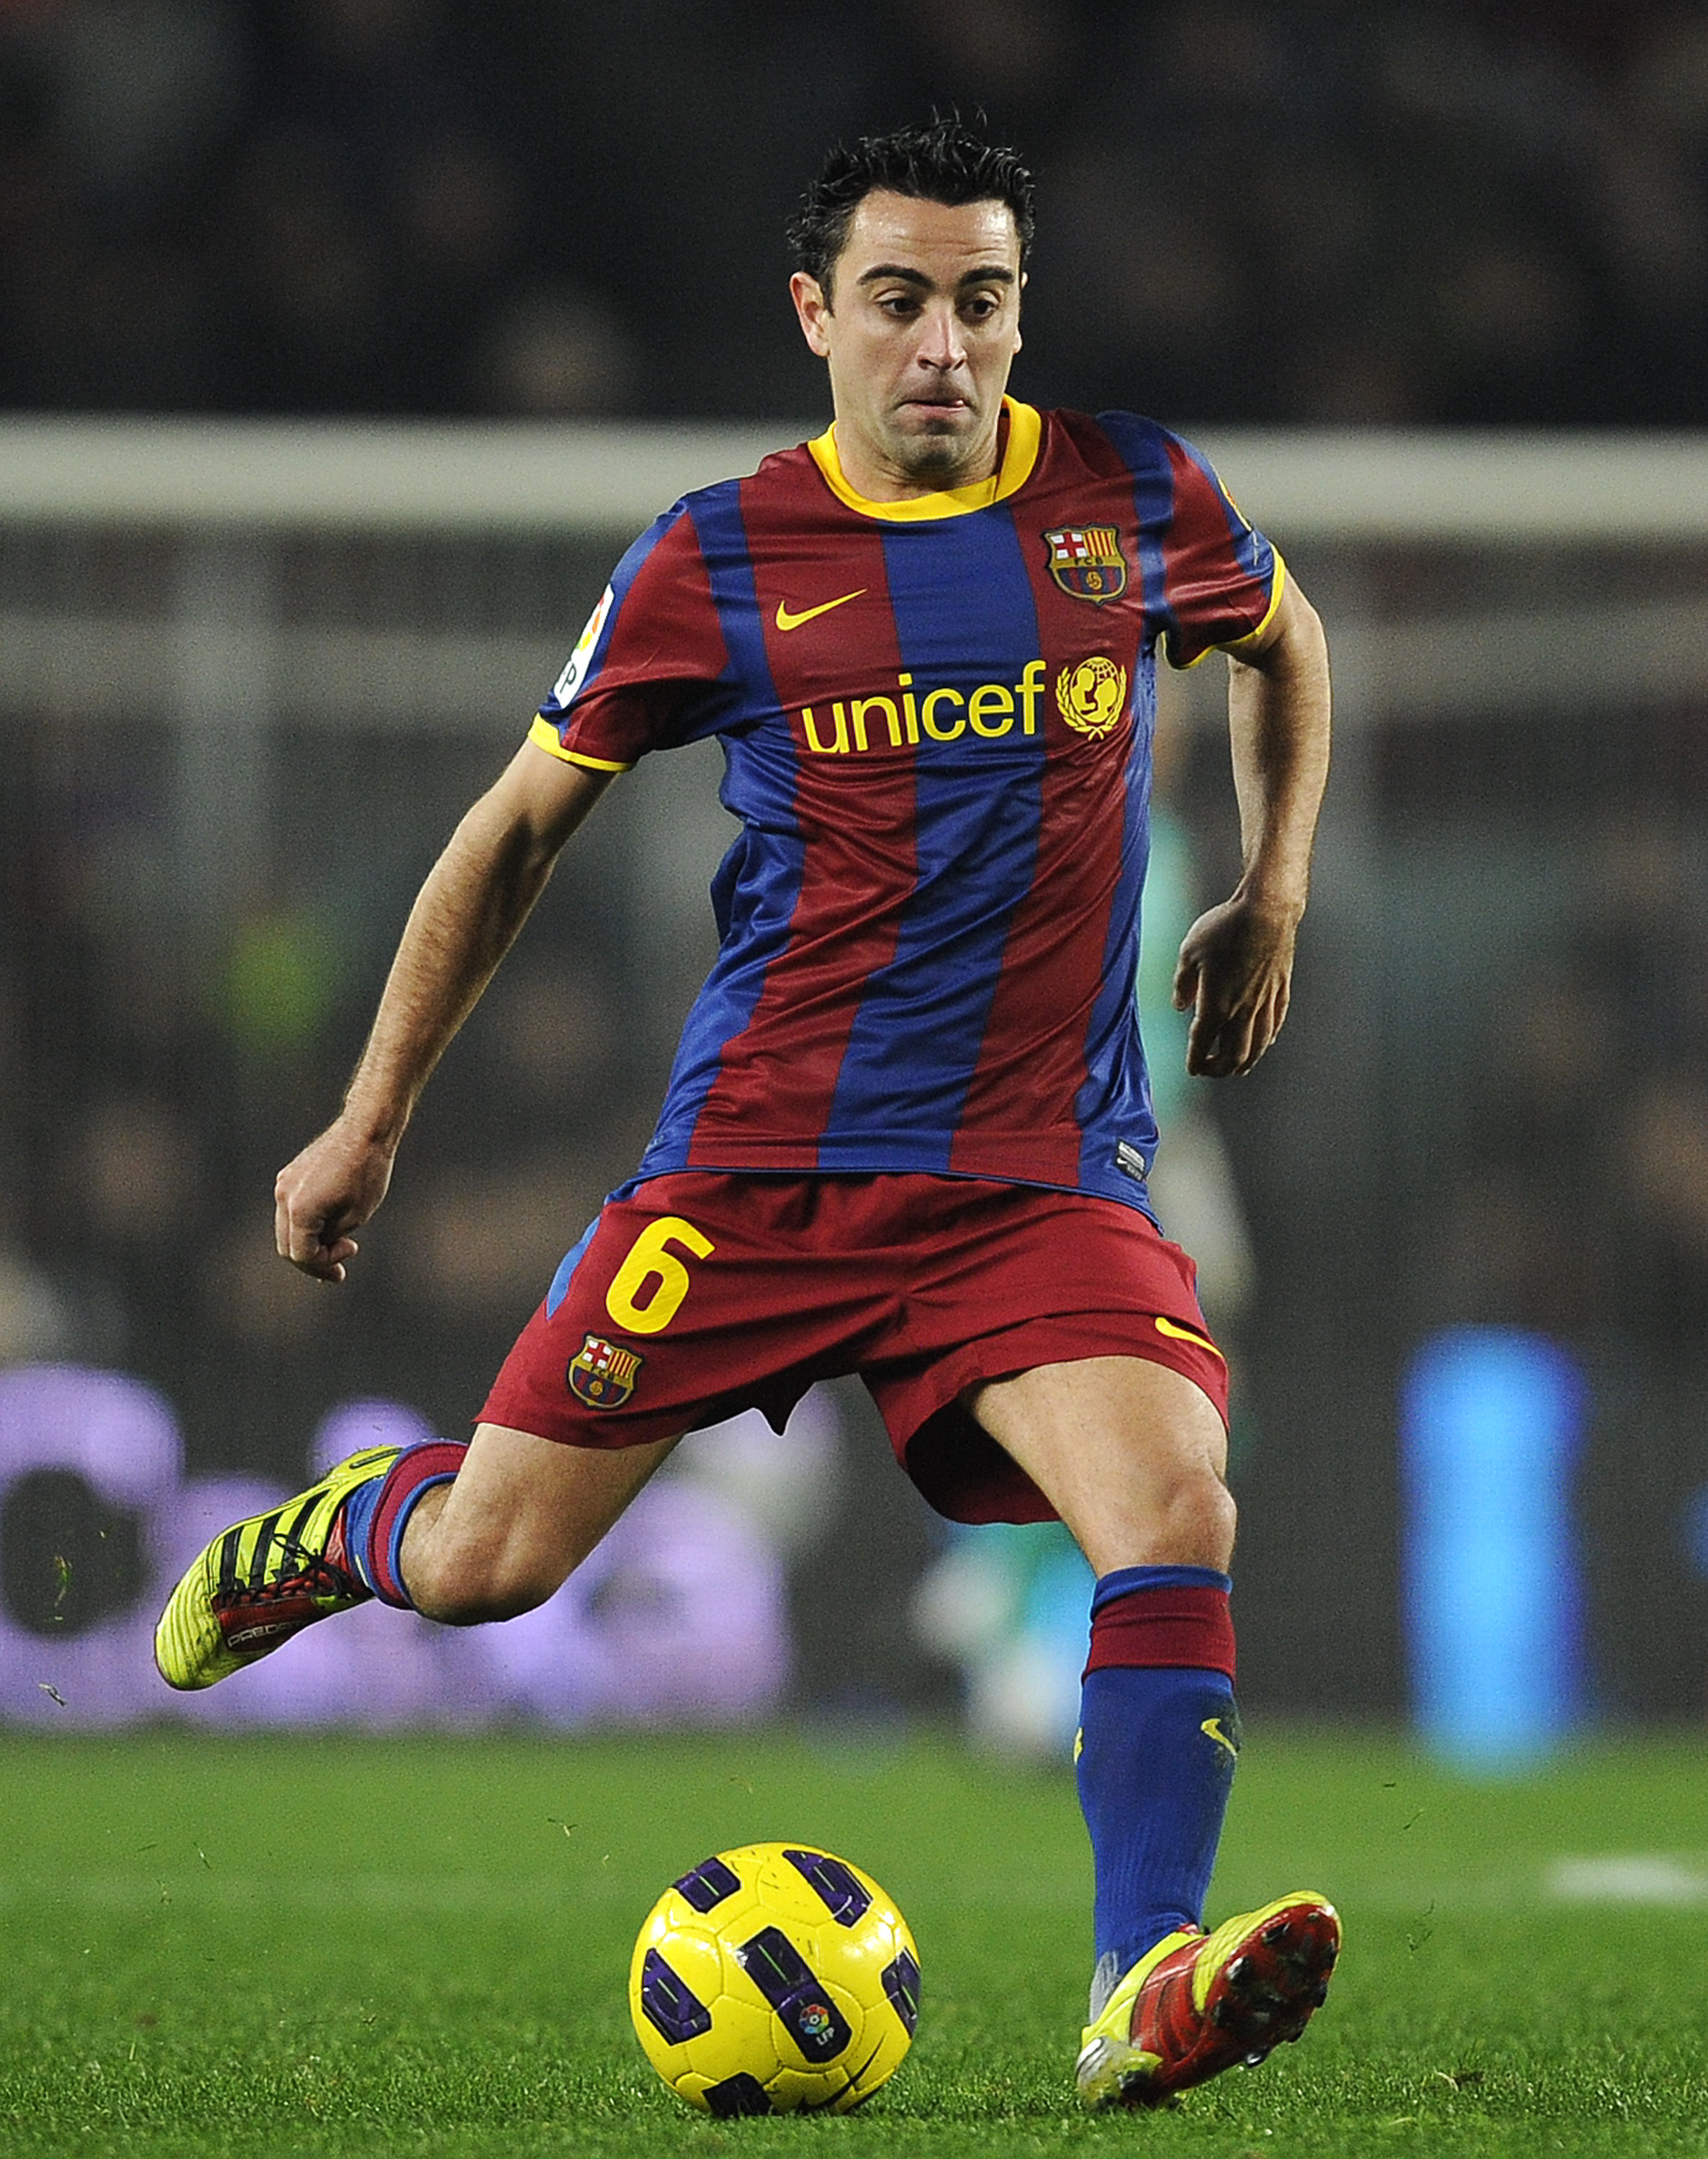 BARCELONA, SPAIN - JANUARY 16:  Xavi Hernandez of FC Barcelona runs with the ball during the La Liga match between FC Barcelona and Malaga at Nou Camp on January 16, 2011 in Barcelona, Spain. Barcelona won 4-1.  (Photo by David Ramos/Getty Images)